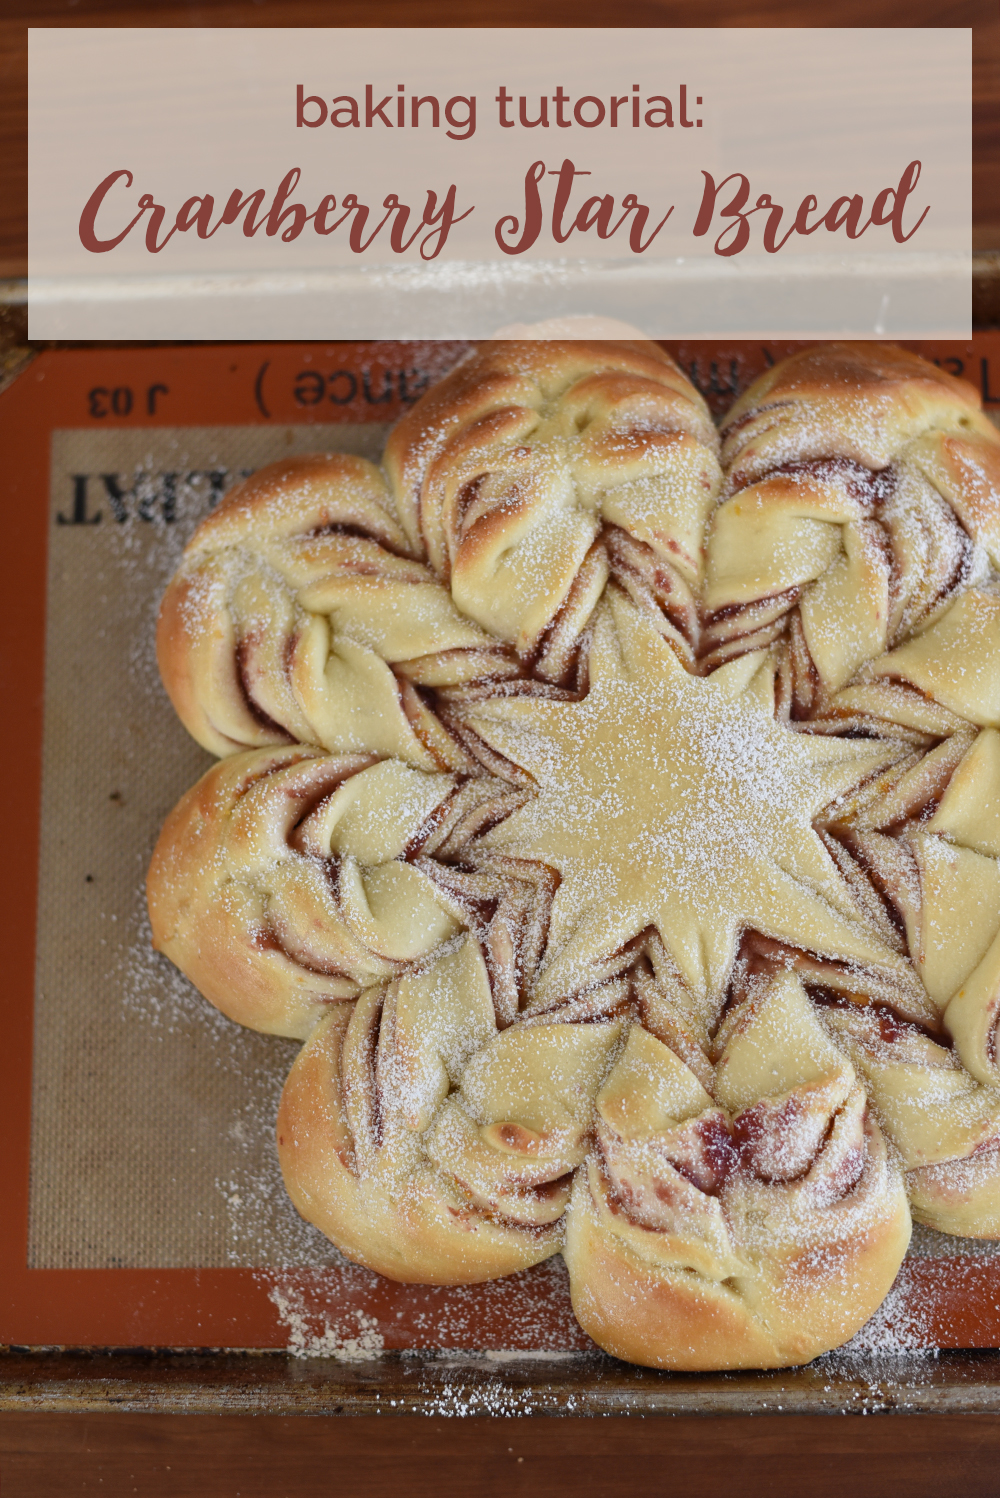 Christmas cranberry star bread recipe & baking tutorial